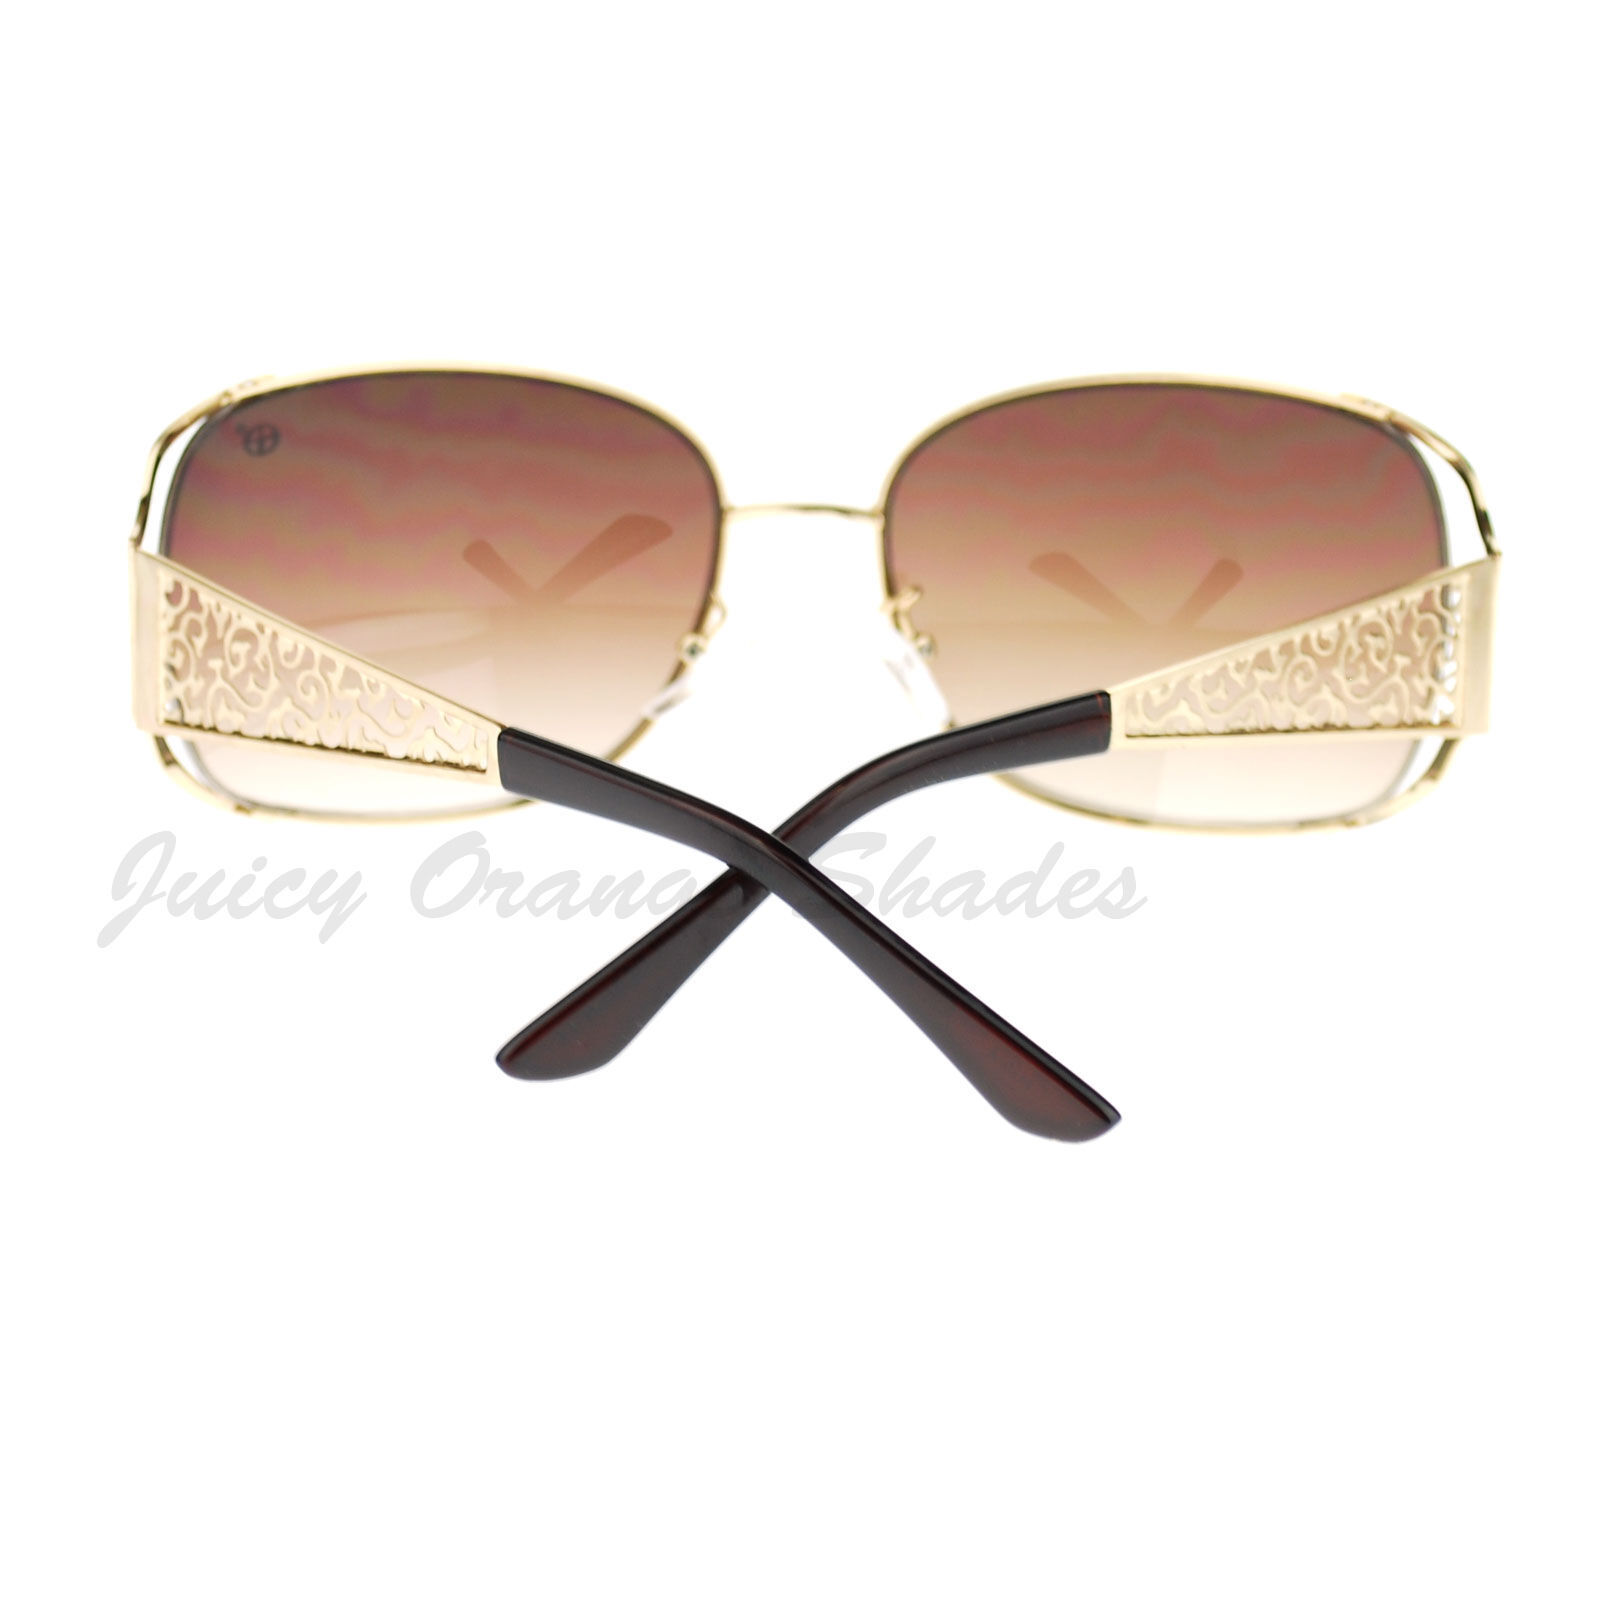 Vintage Fashion Womens Sunglasses Rectangular Open Side Frame